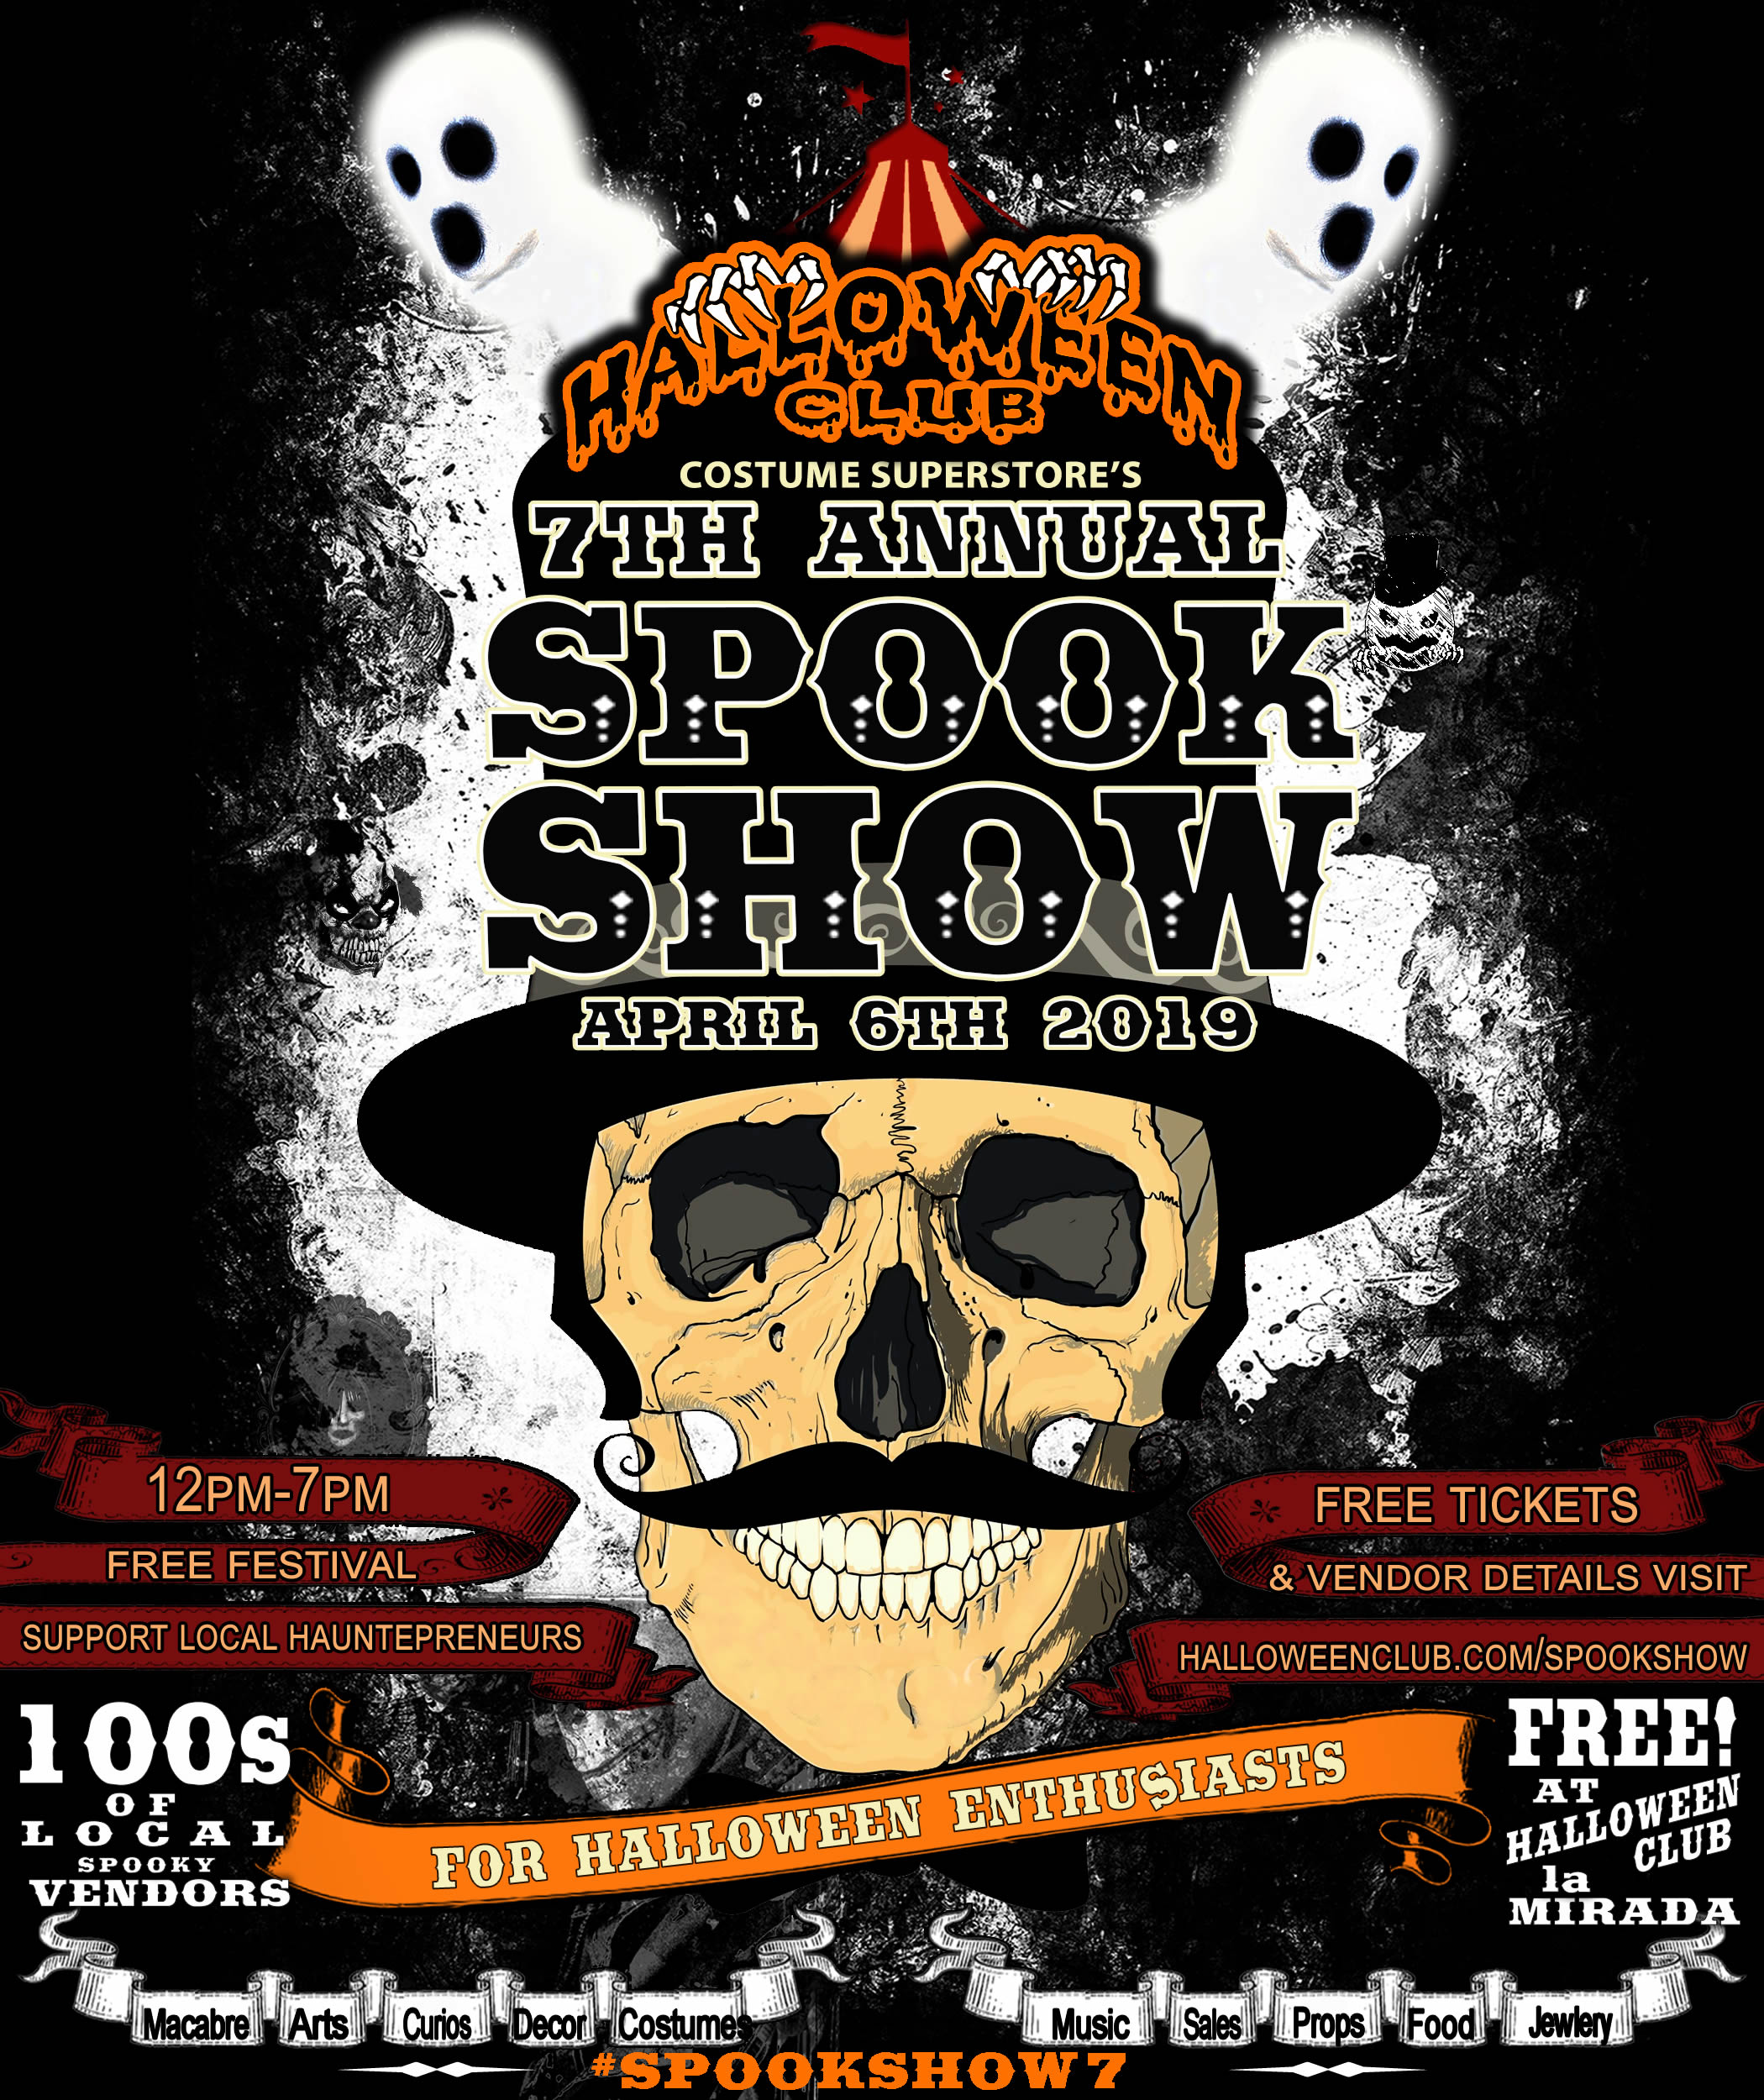 Spook Show 7 at Halloween Club